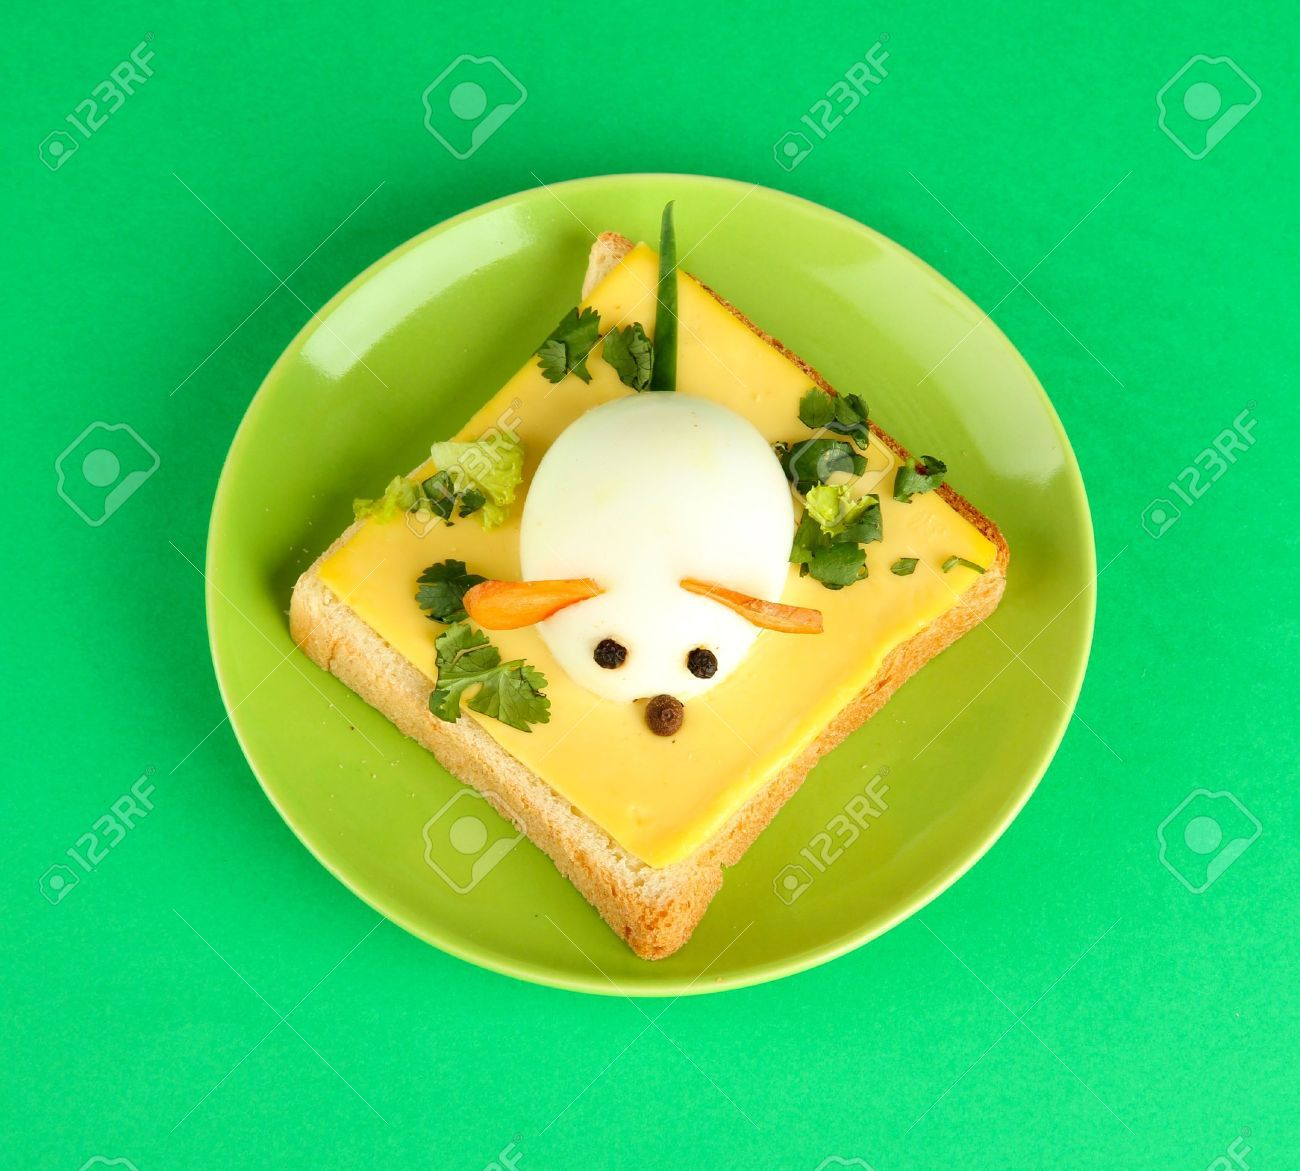 Fun food for kids on color background stock photo picture and royalty free image image 16619027